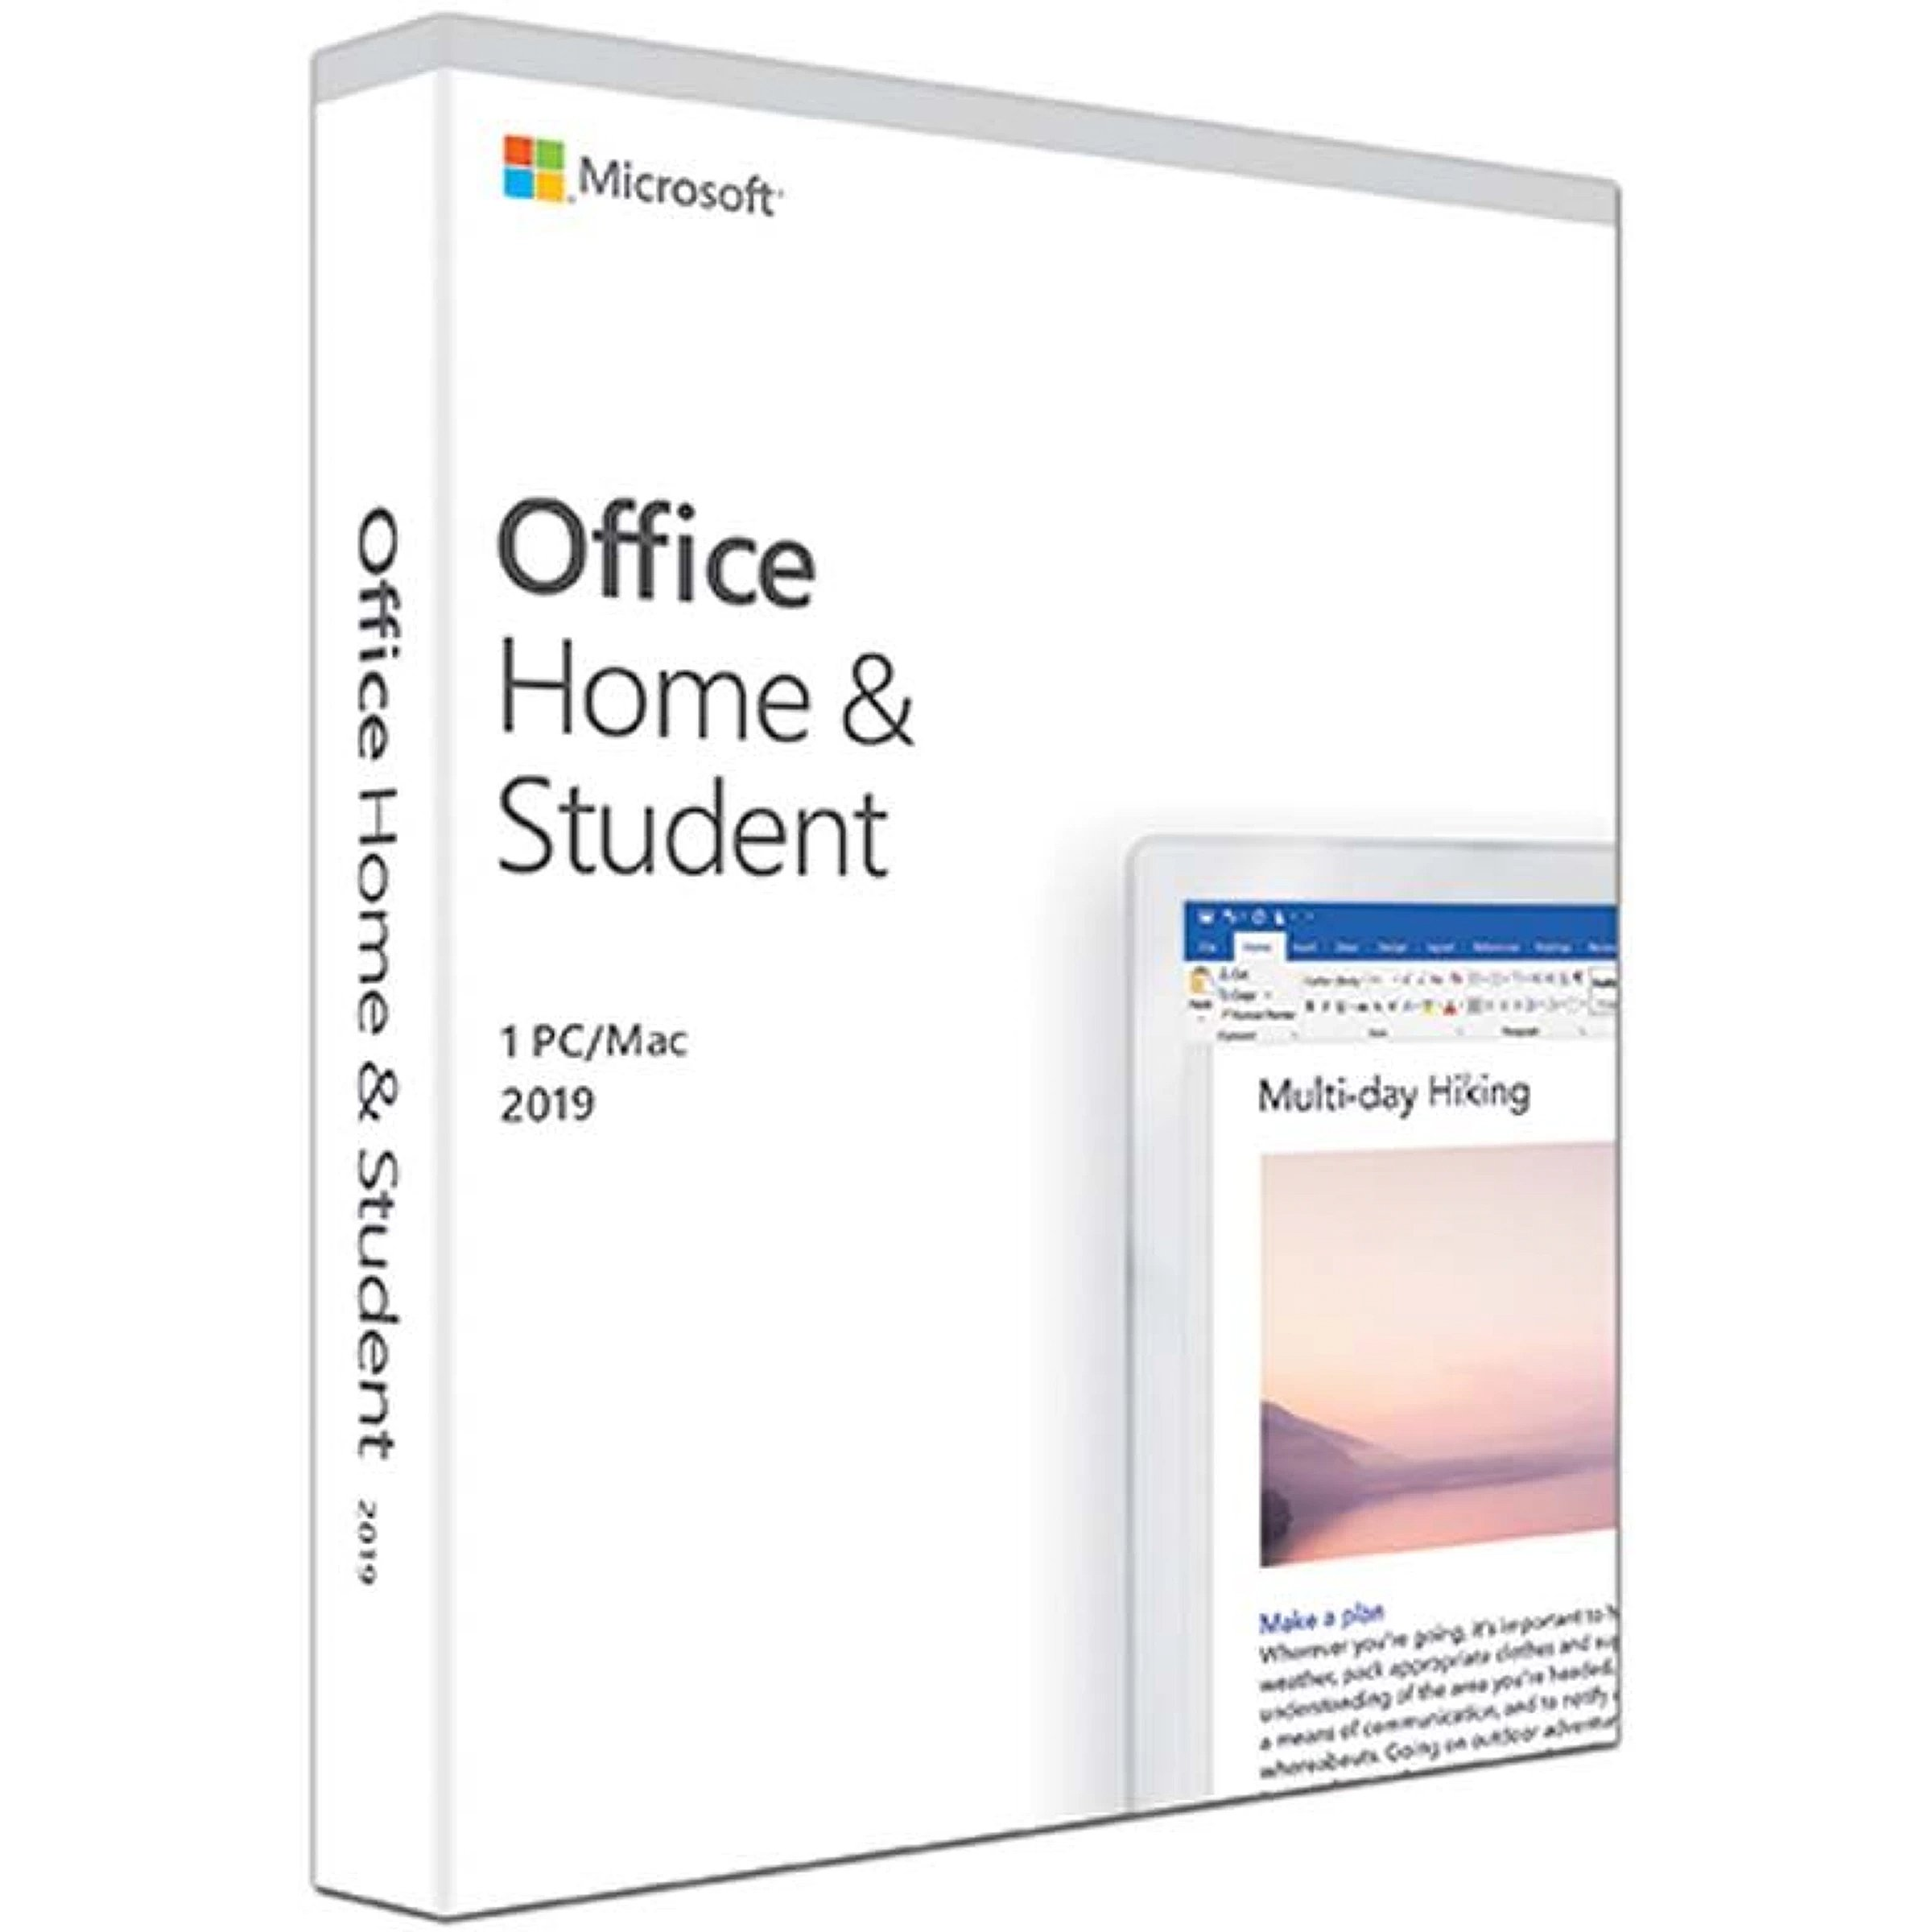 Microsoft Office Home & Student 2019, Russian